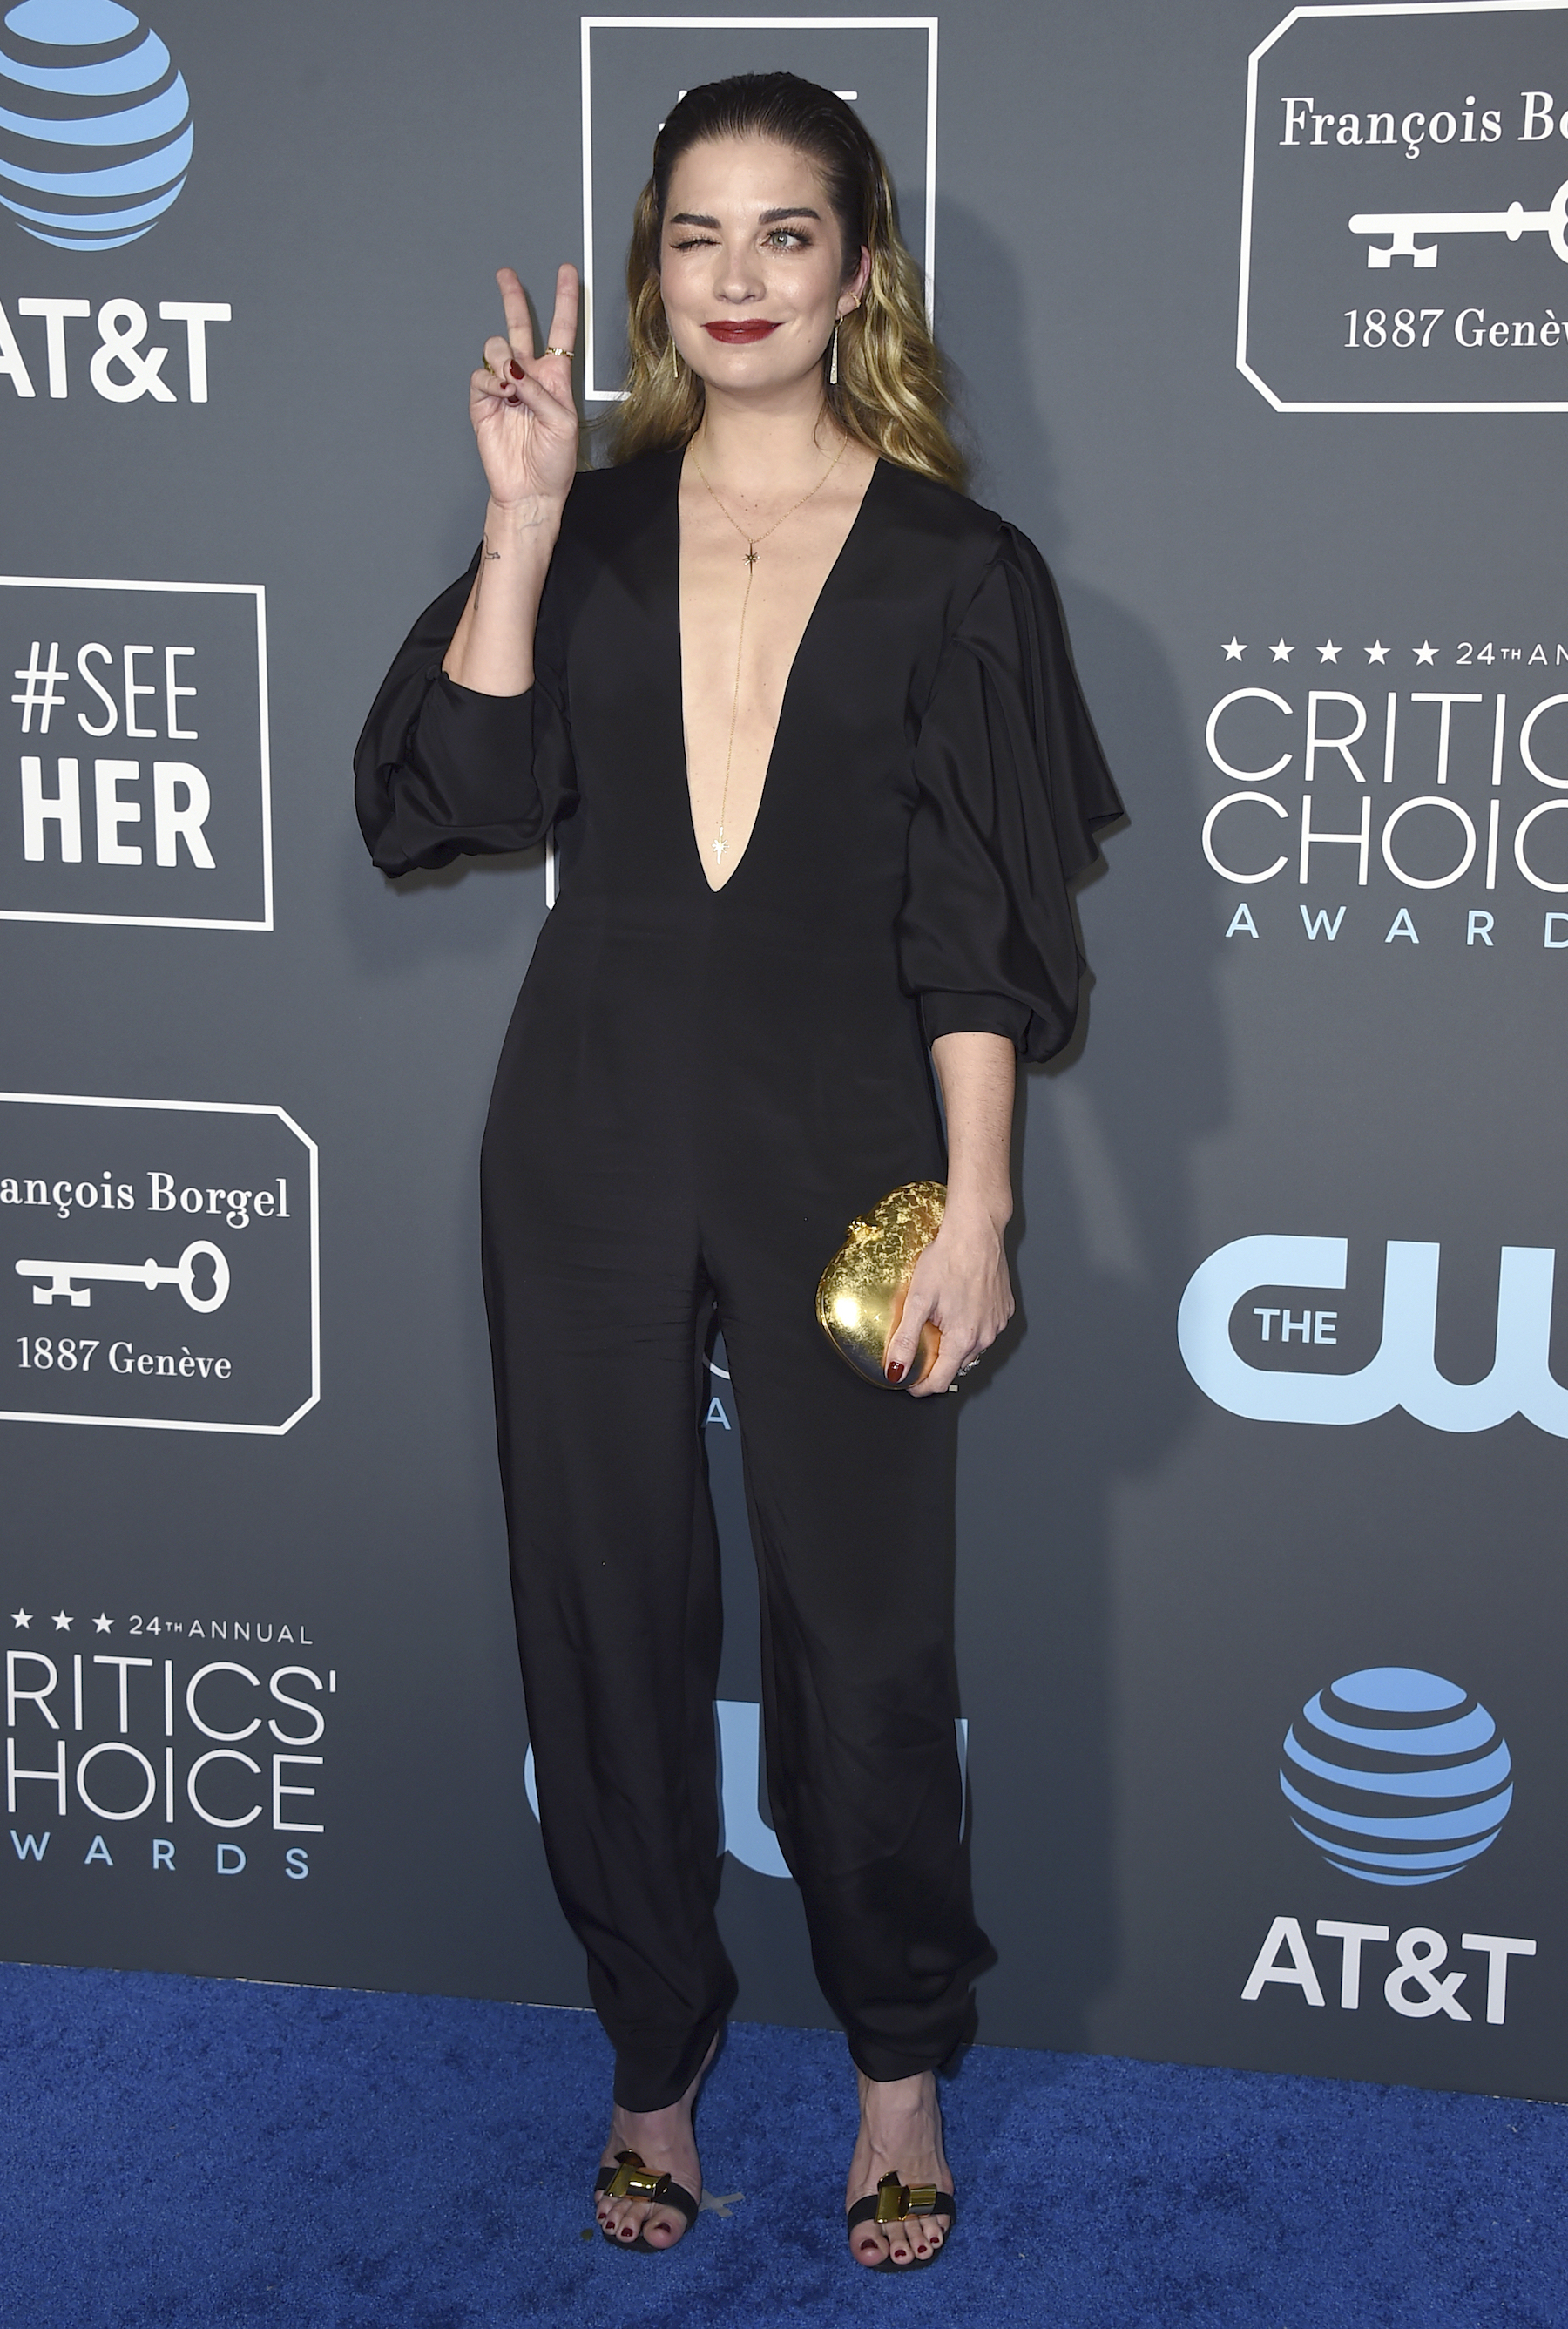 <div class='meta'><div class='origin-logo' data-origin='AP'></div><span class='caption-text' data-credit='Jordan Strauss/Invision/AP'>Annie Murphy arrives at the 24th annual Critics' Choice Awards on Sunday, Jan. 13, 2019, at the Barker Hangar in Santa Monica, Calif.</span></div>